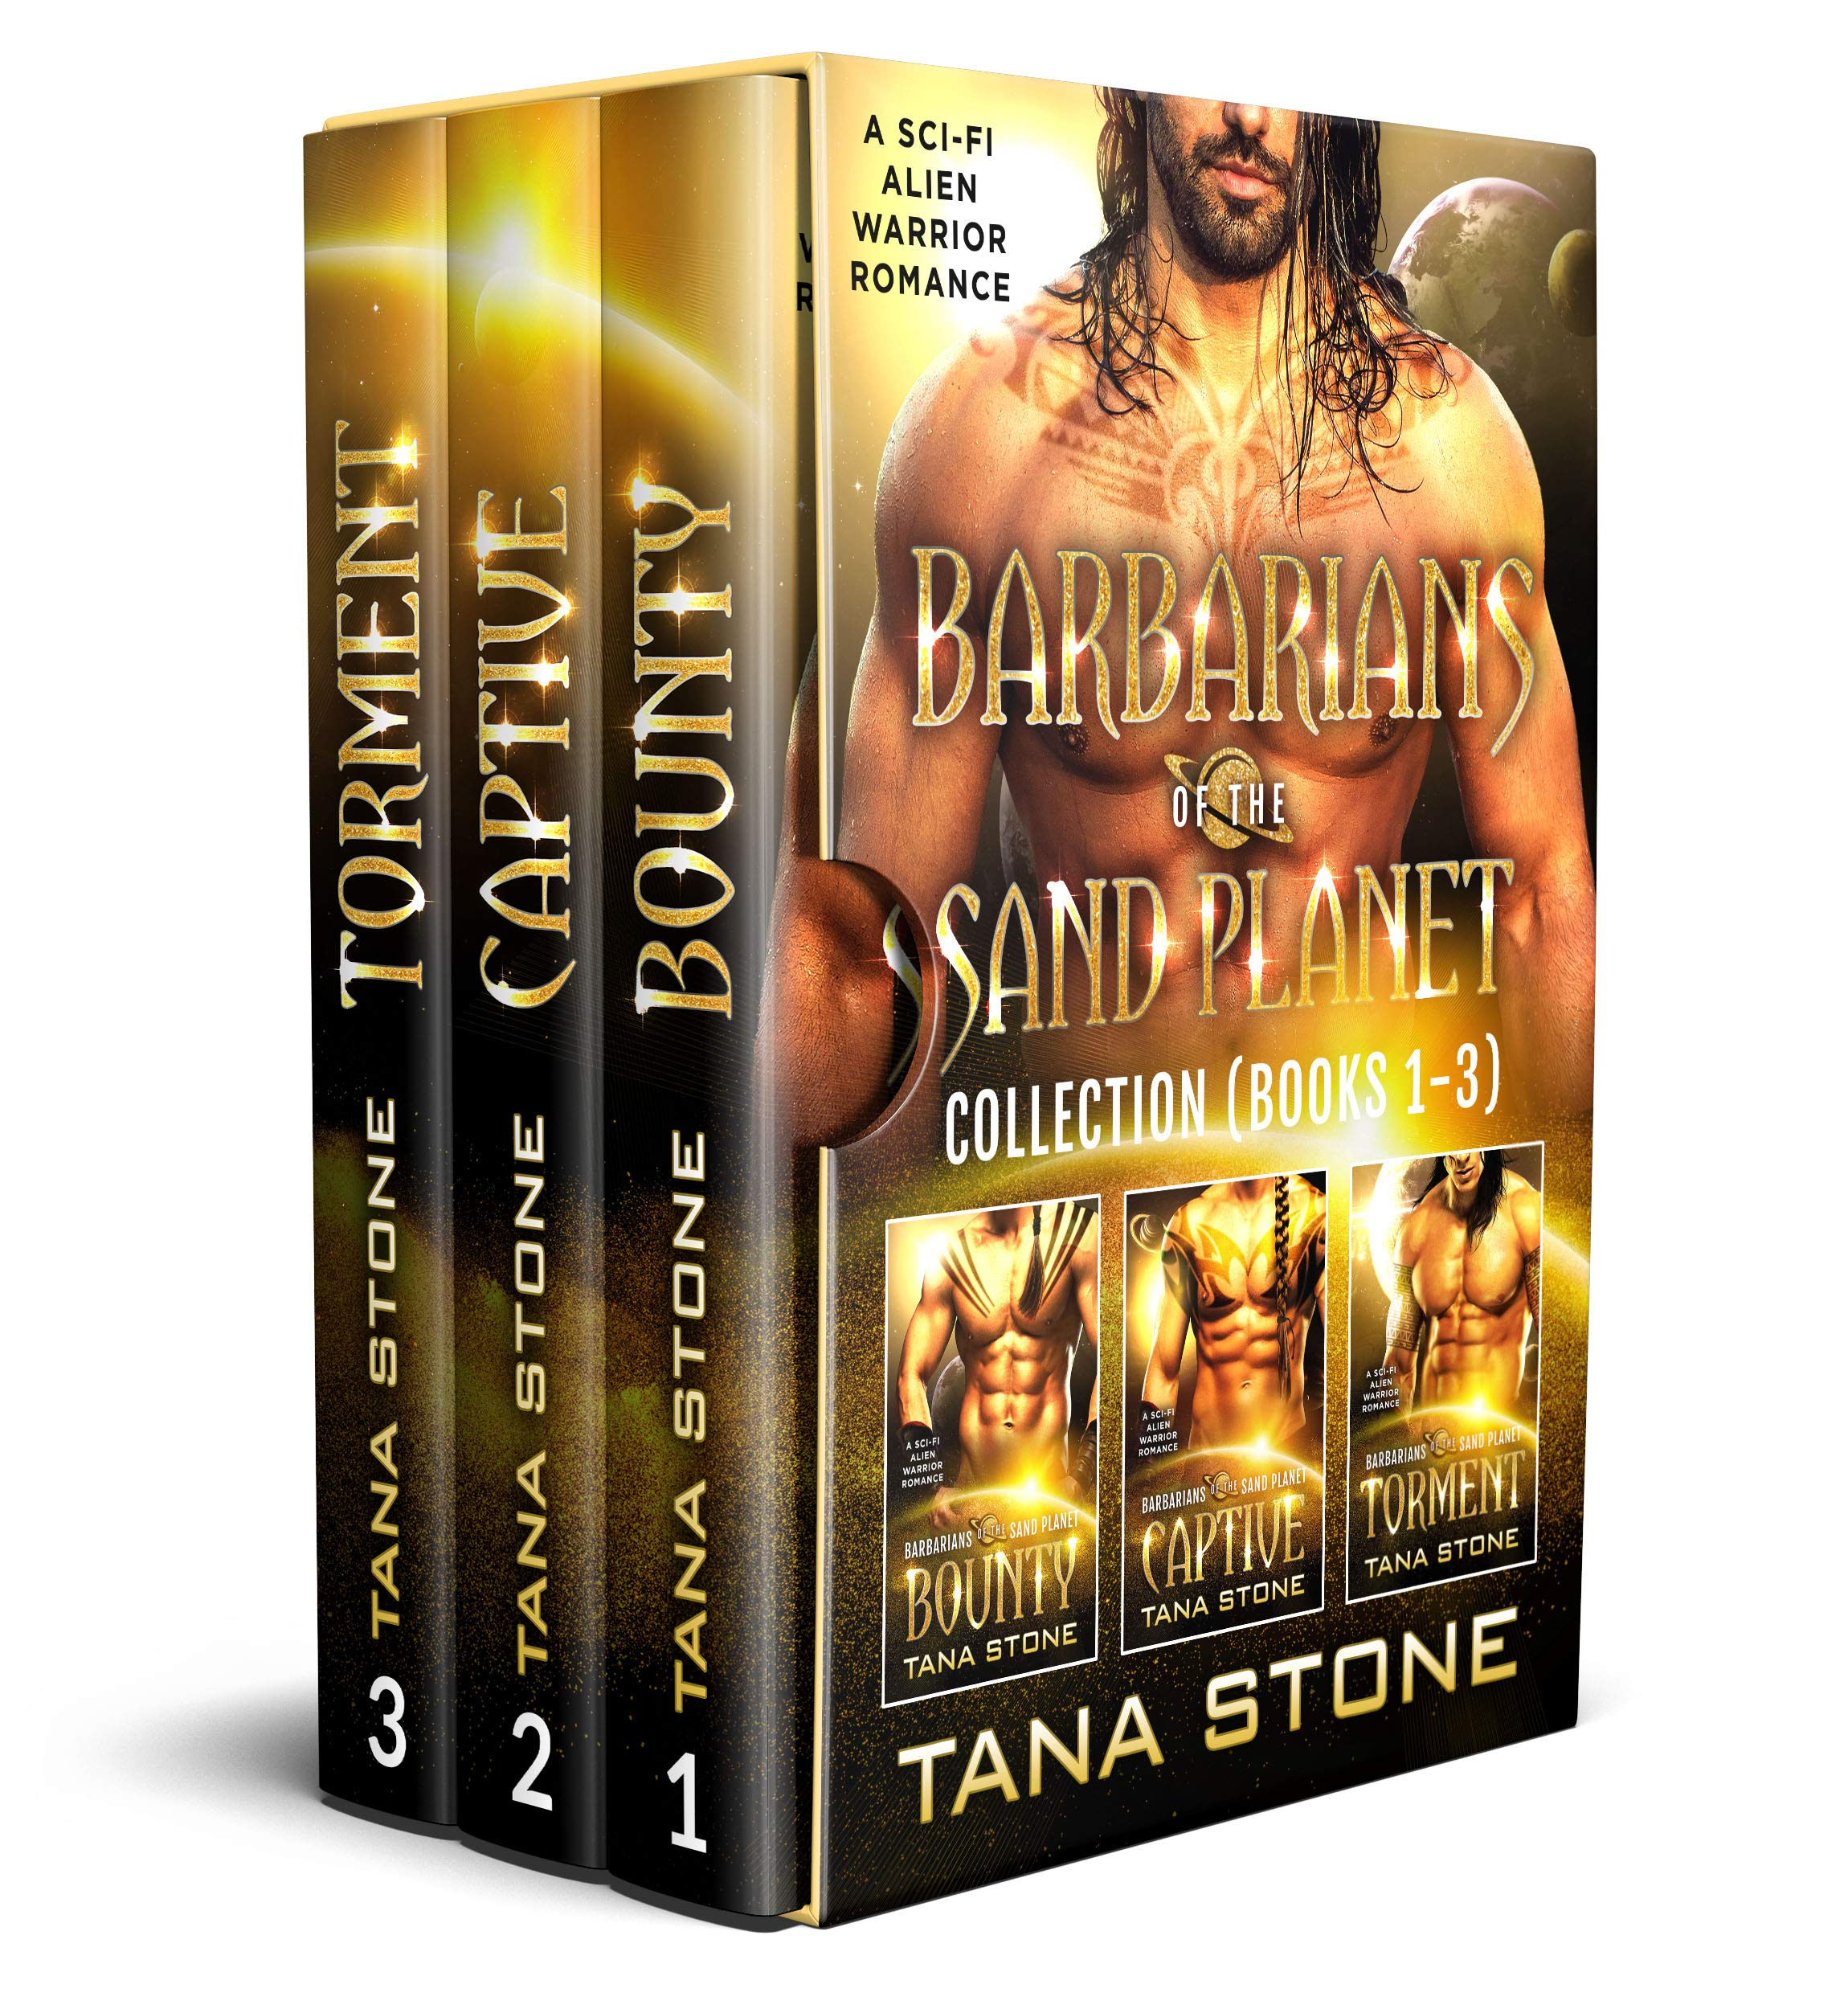 Barbarians of the Sand Planet Collection Books 1-3: A Sci-Fi Alien Warrior Romance